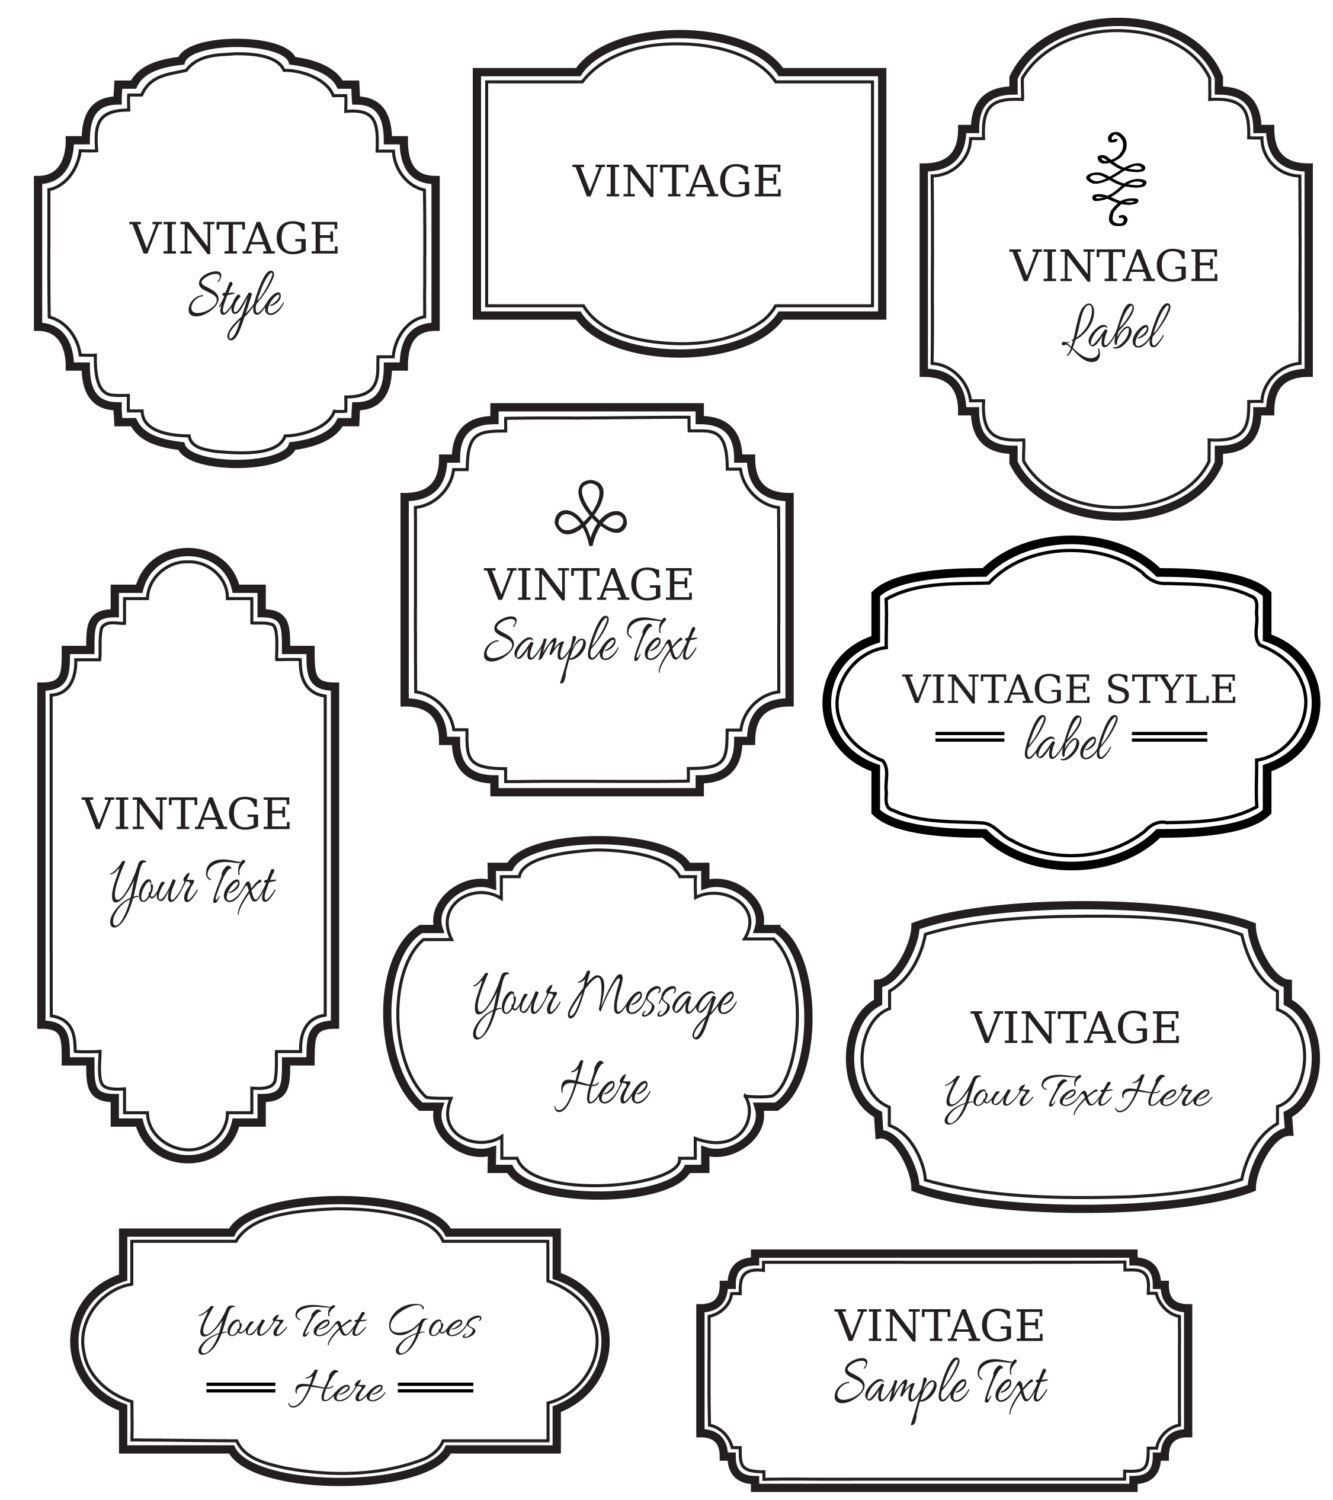 vintage labels clip art digital frame vector eps editable diy cards invitation. Black Bedroom Furniture Sets. Home Design Ideas